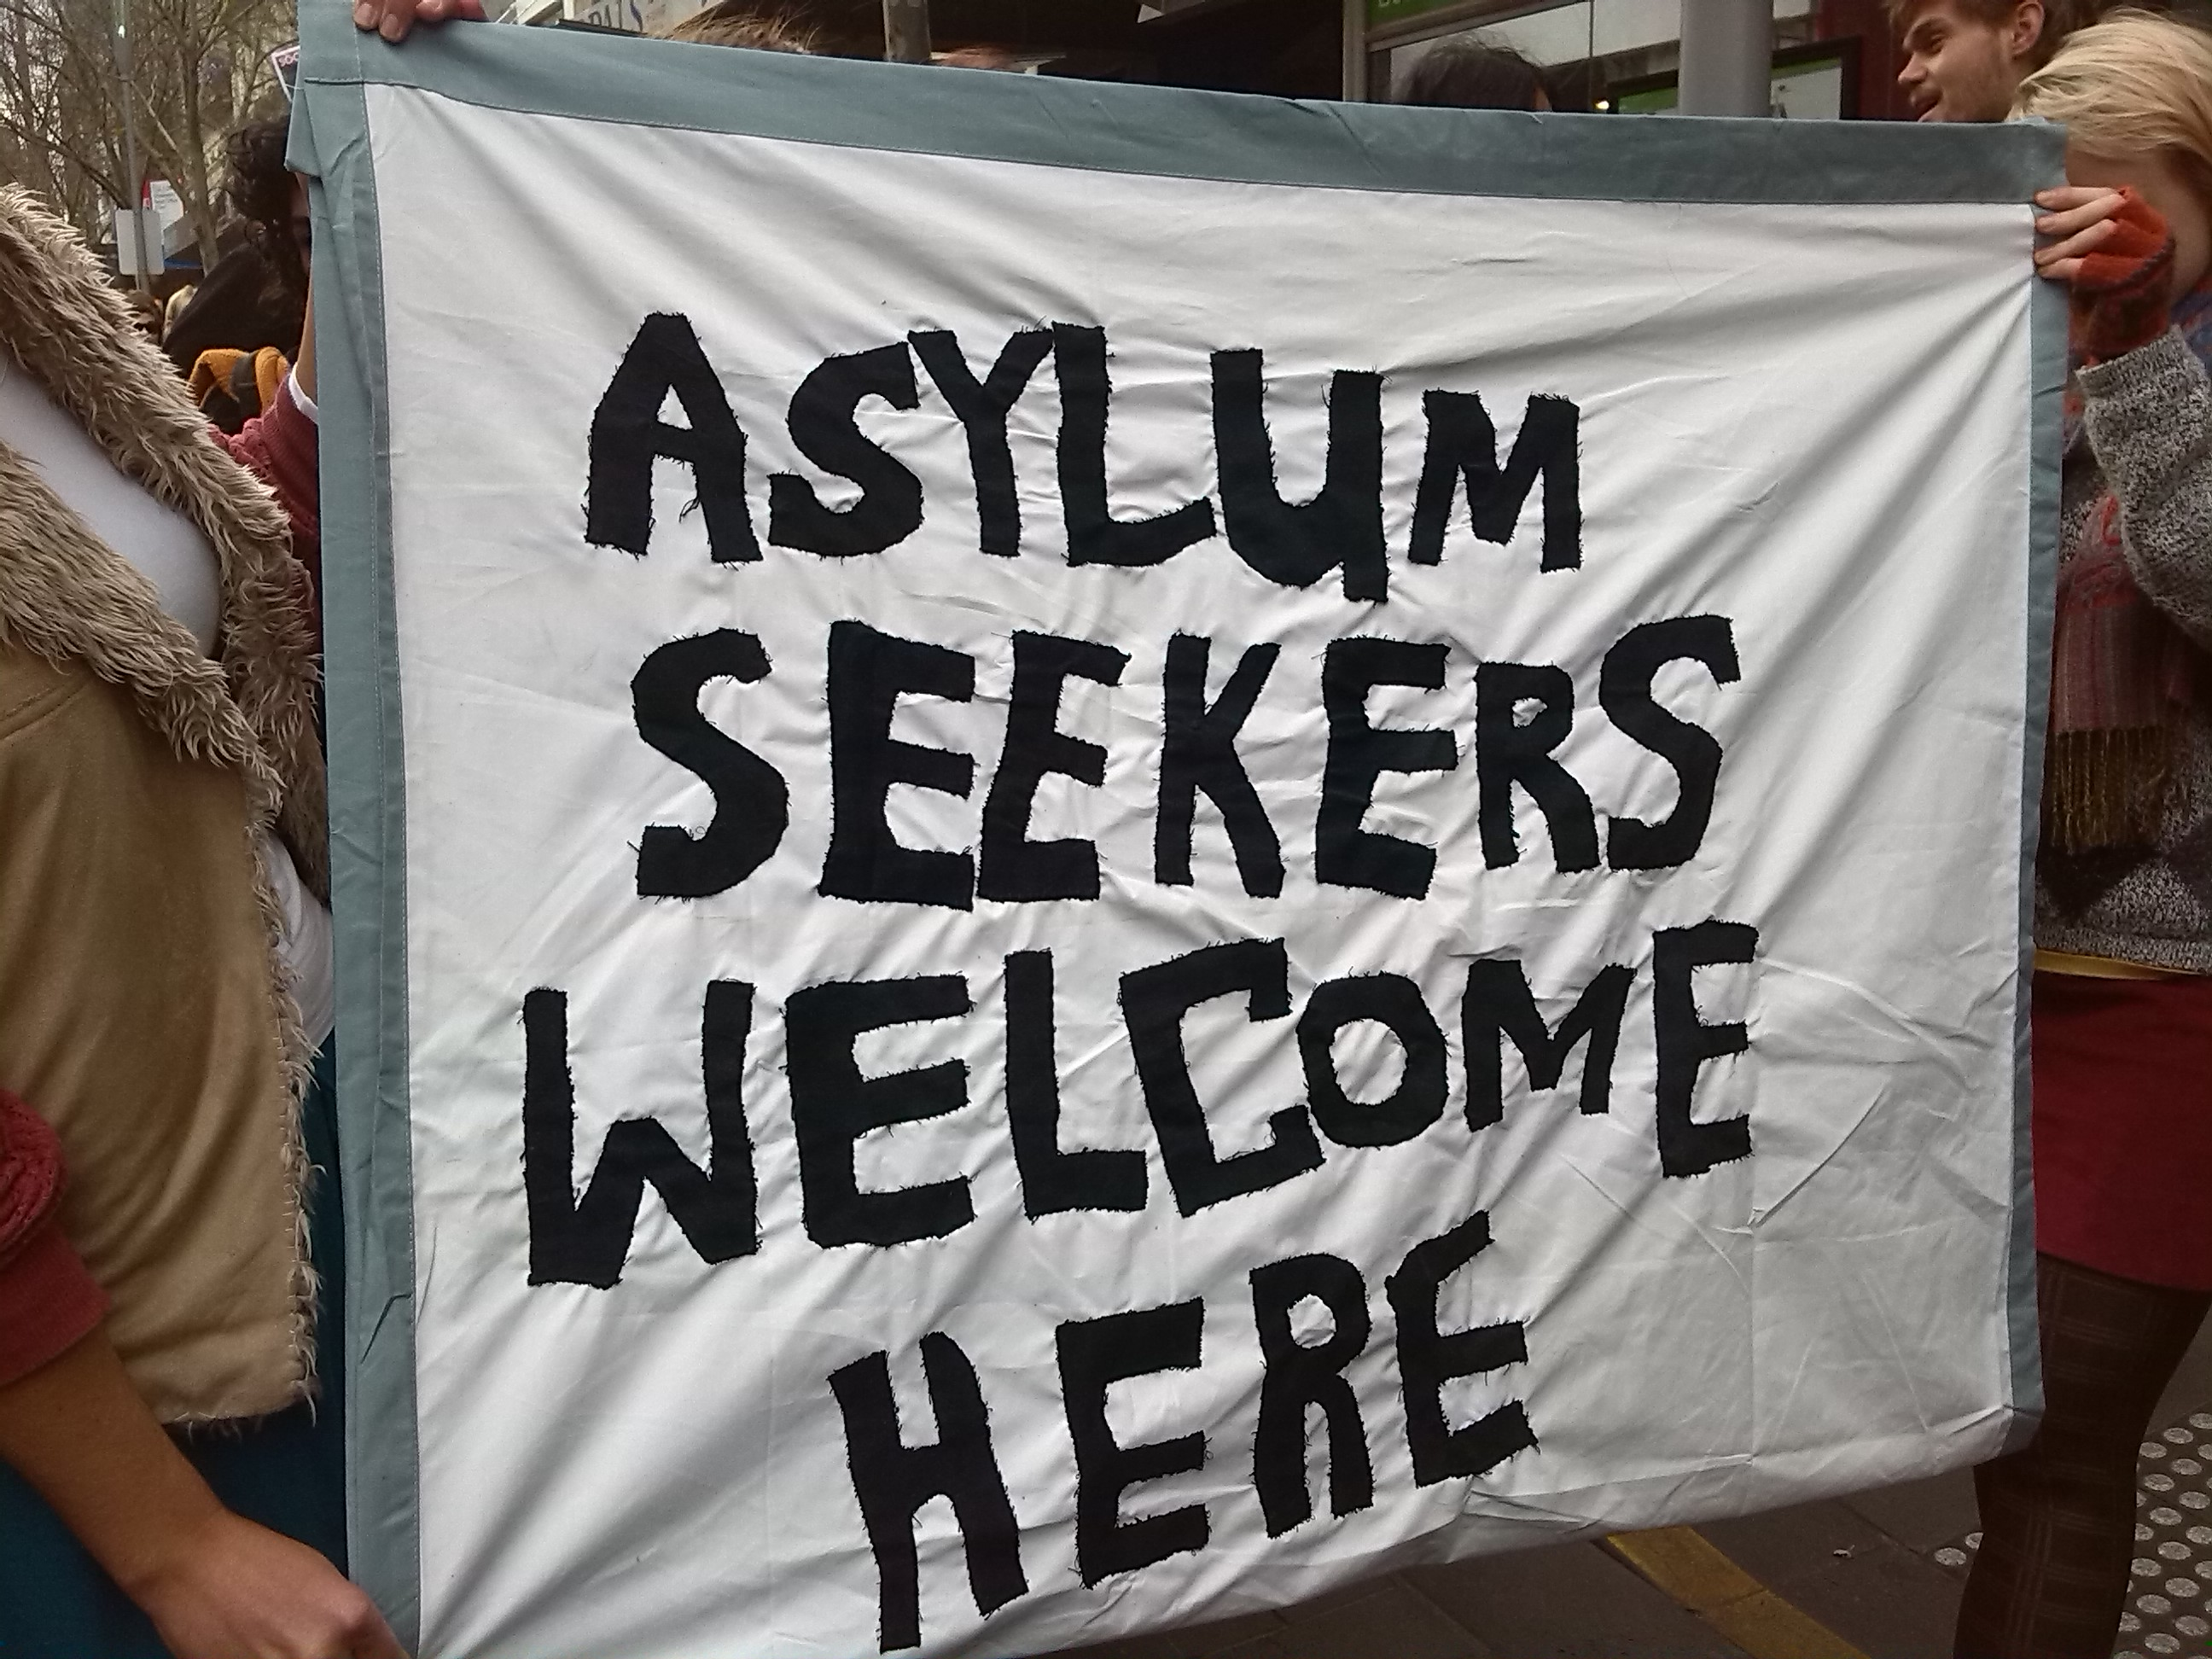 asylum seekers essay It is incongruous that in a country as large, wealthy and multicultural as australia, the treatment of asylum seekers and refugees is a national preoccupation.